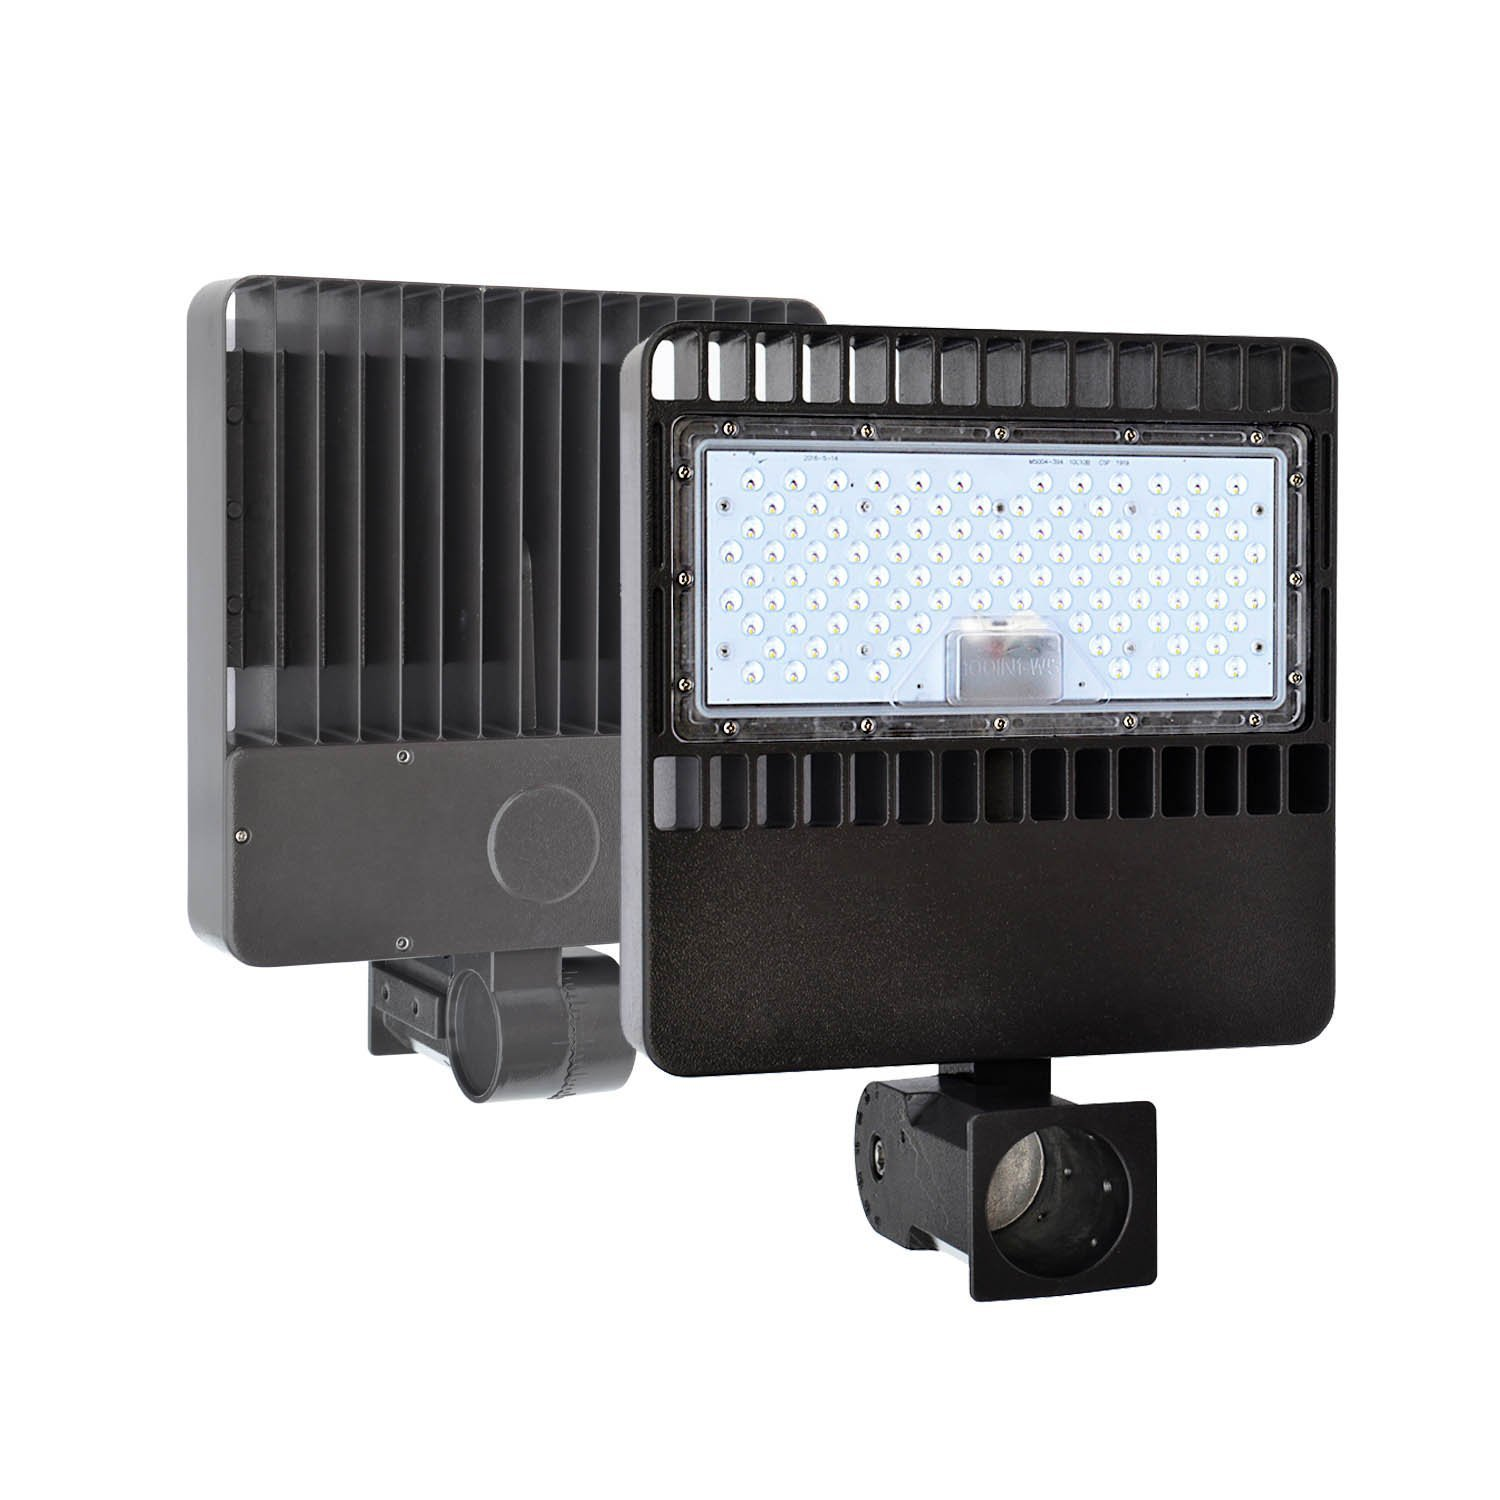 LED Shoebox Pole Light 150W (500W Equal HID/HPS Replacement) and 0-10V Dimmable ,Daylight White 5000K ETL DLC Listed with Slip Fitter Adjustable Mount for Parking Lot Outdoor Street Area Light